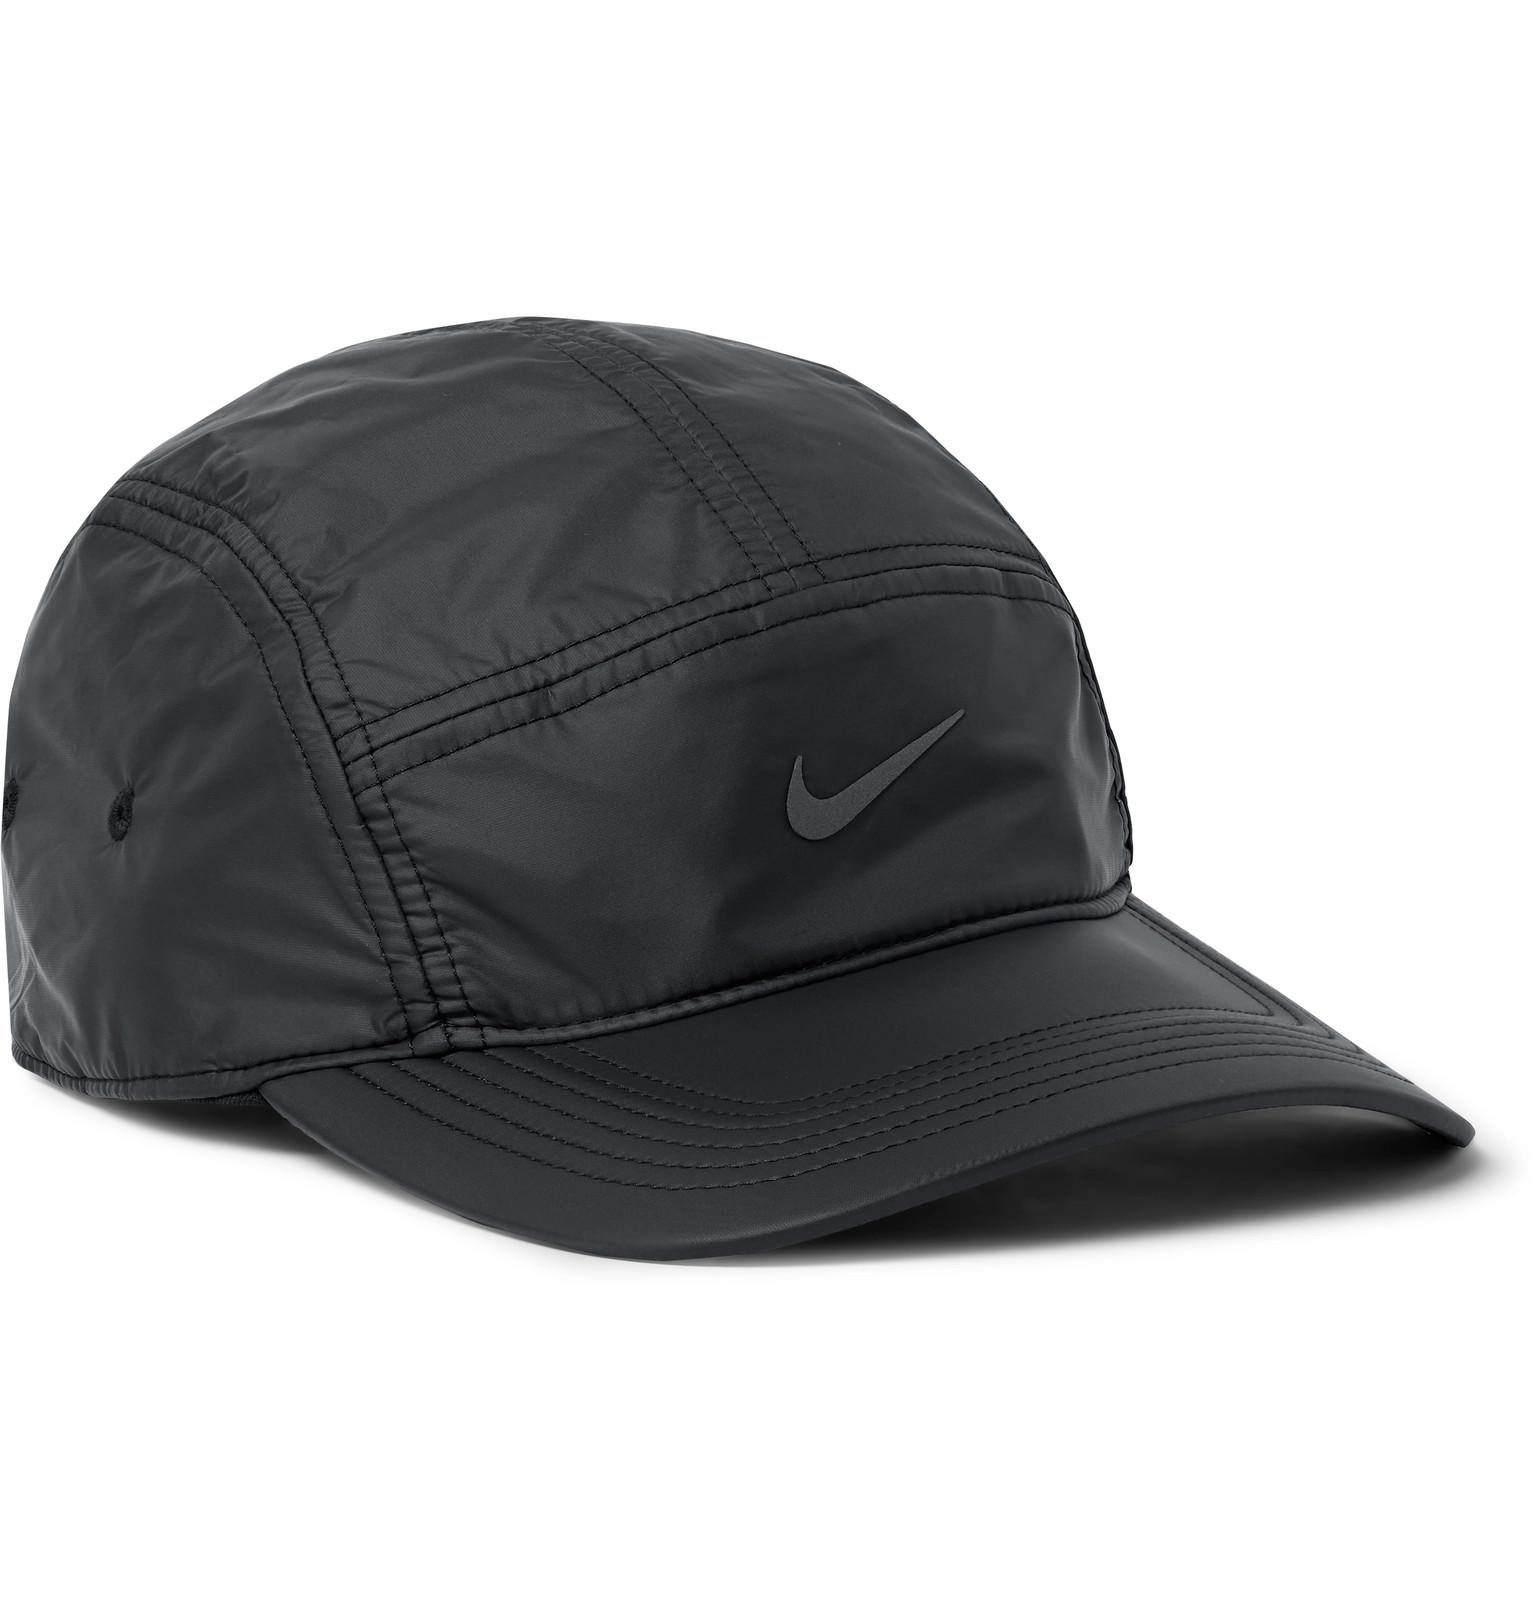 88a011282819 Lyst - Nike + Fear Of God Aw84 Dri-fit Baseball Cap in Black for Men